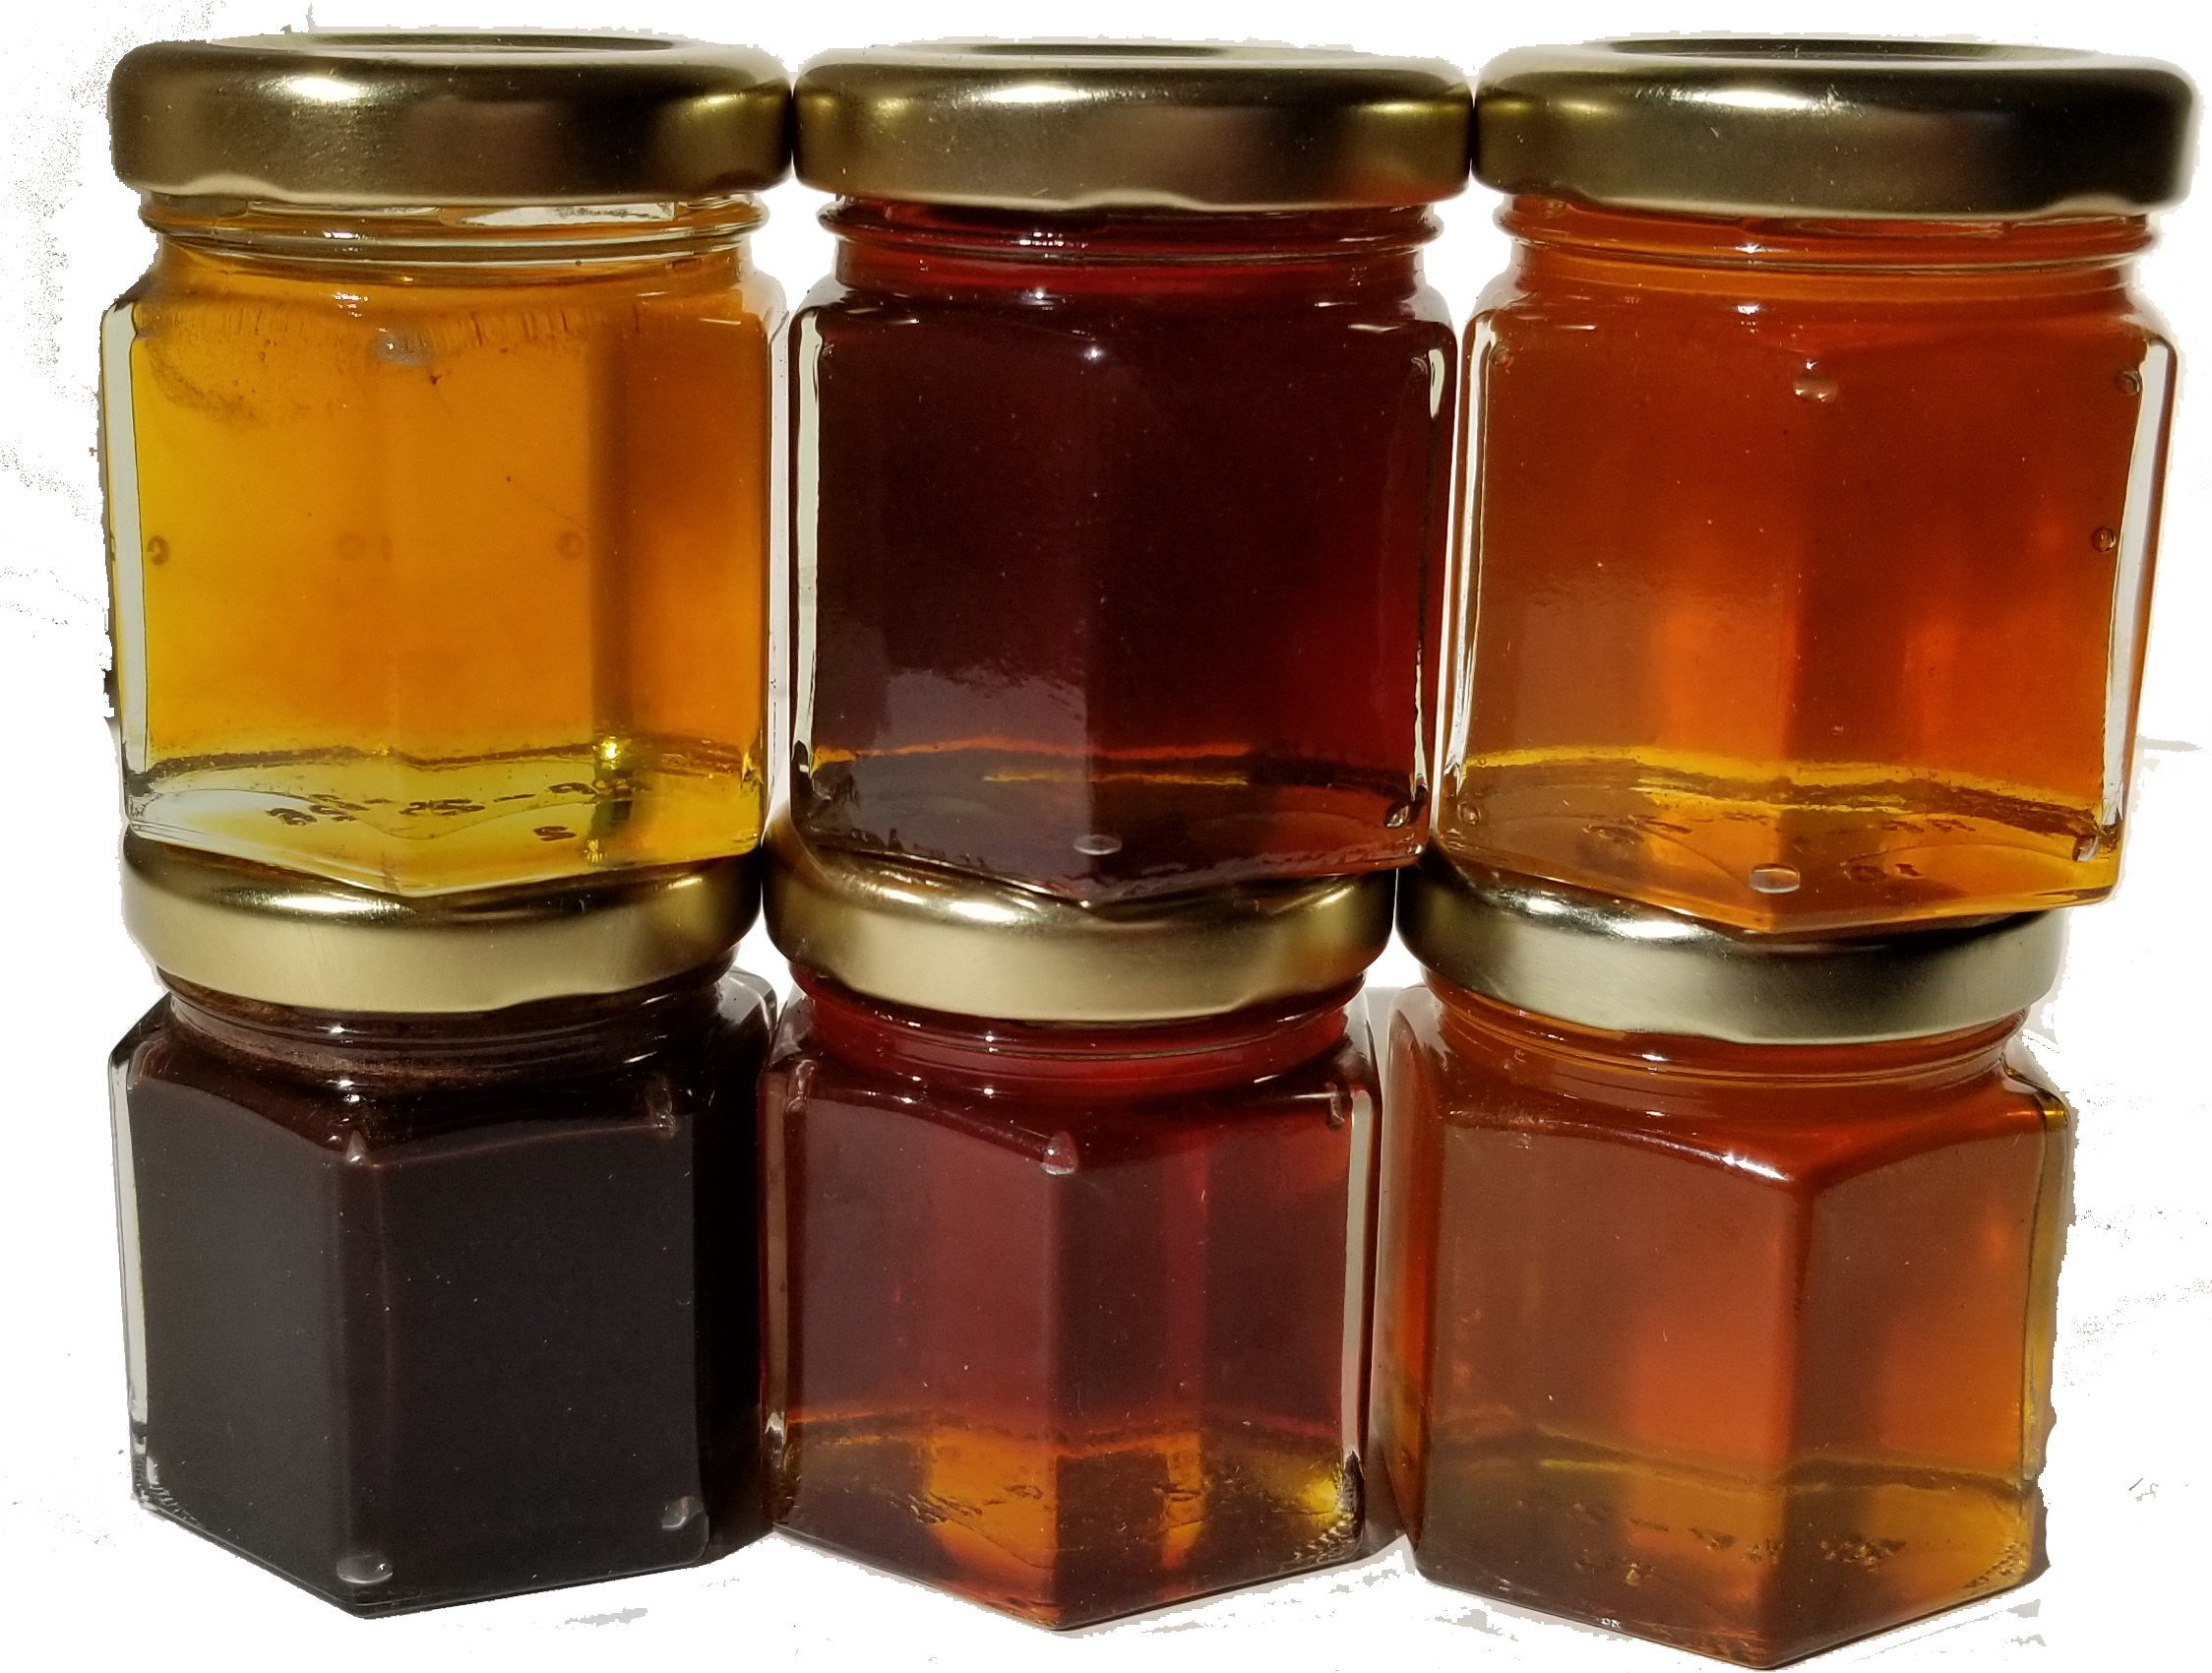 see the different colors of honey, lavender, cinnamon, key lime, chocolate, hot (jalepeno), local wildflower